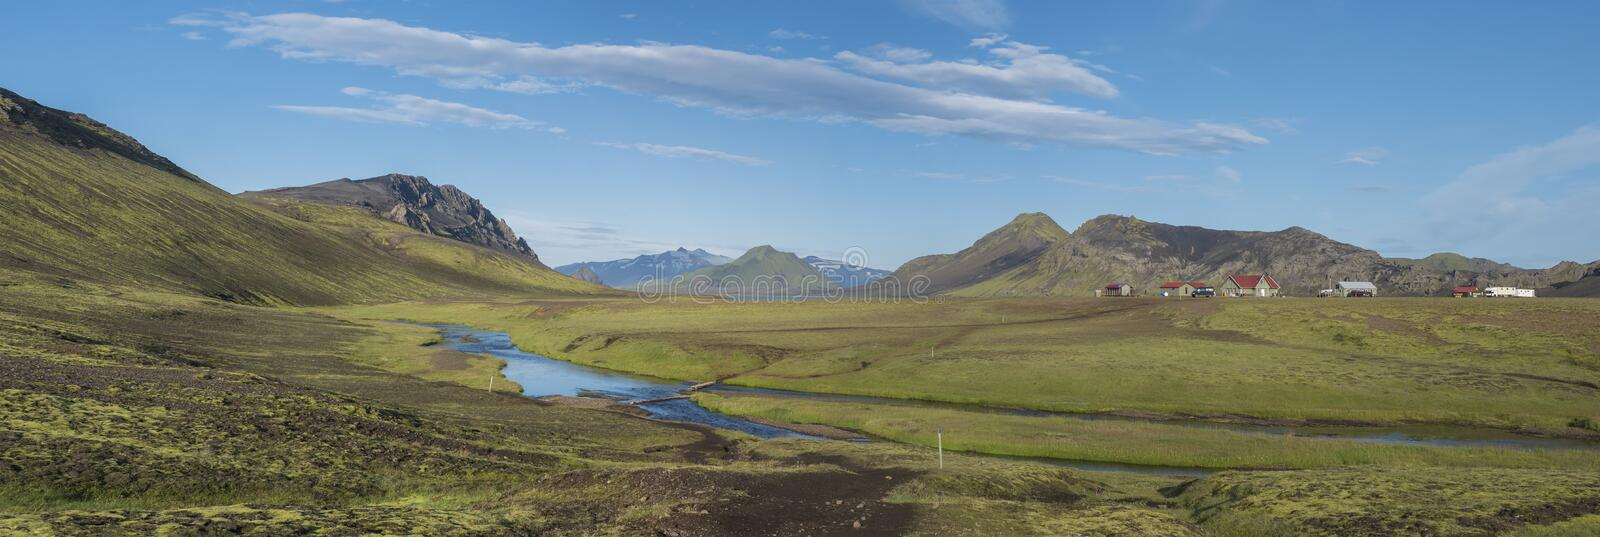 Panoramic landscape with mountain huts at camping site on blue Alftavatn lake with river, green hills and glacier in stock photo